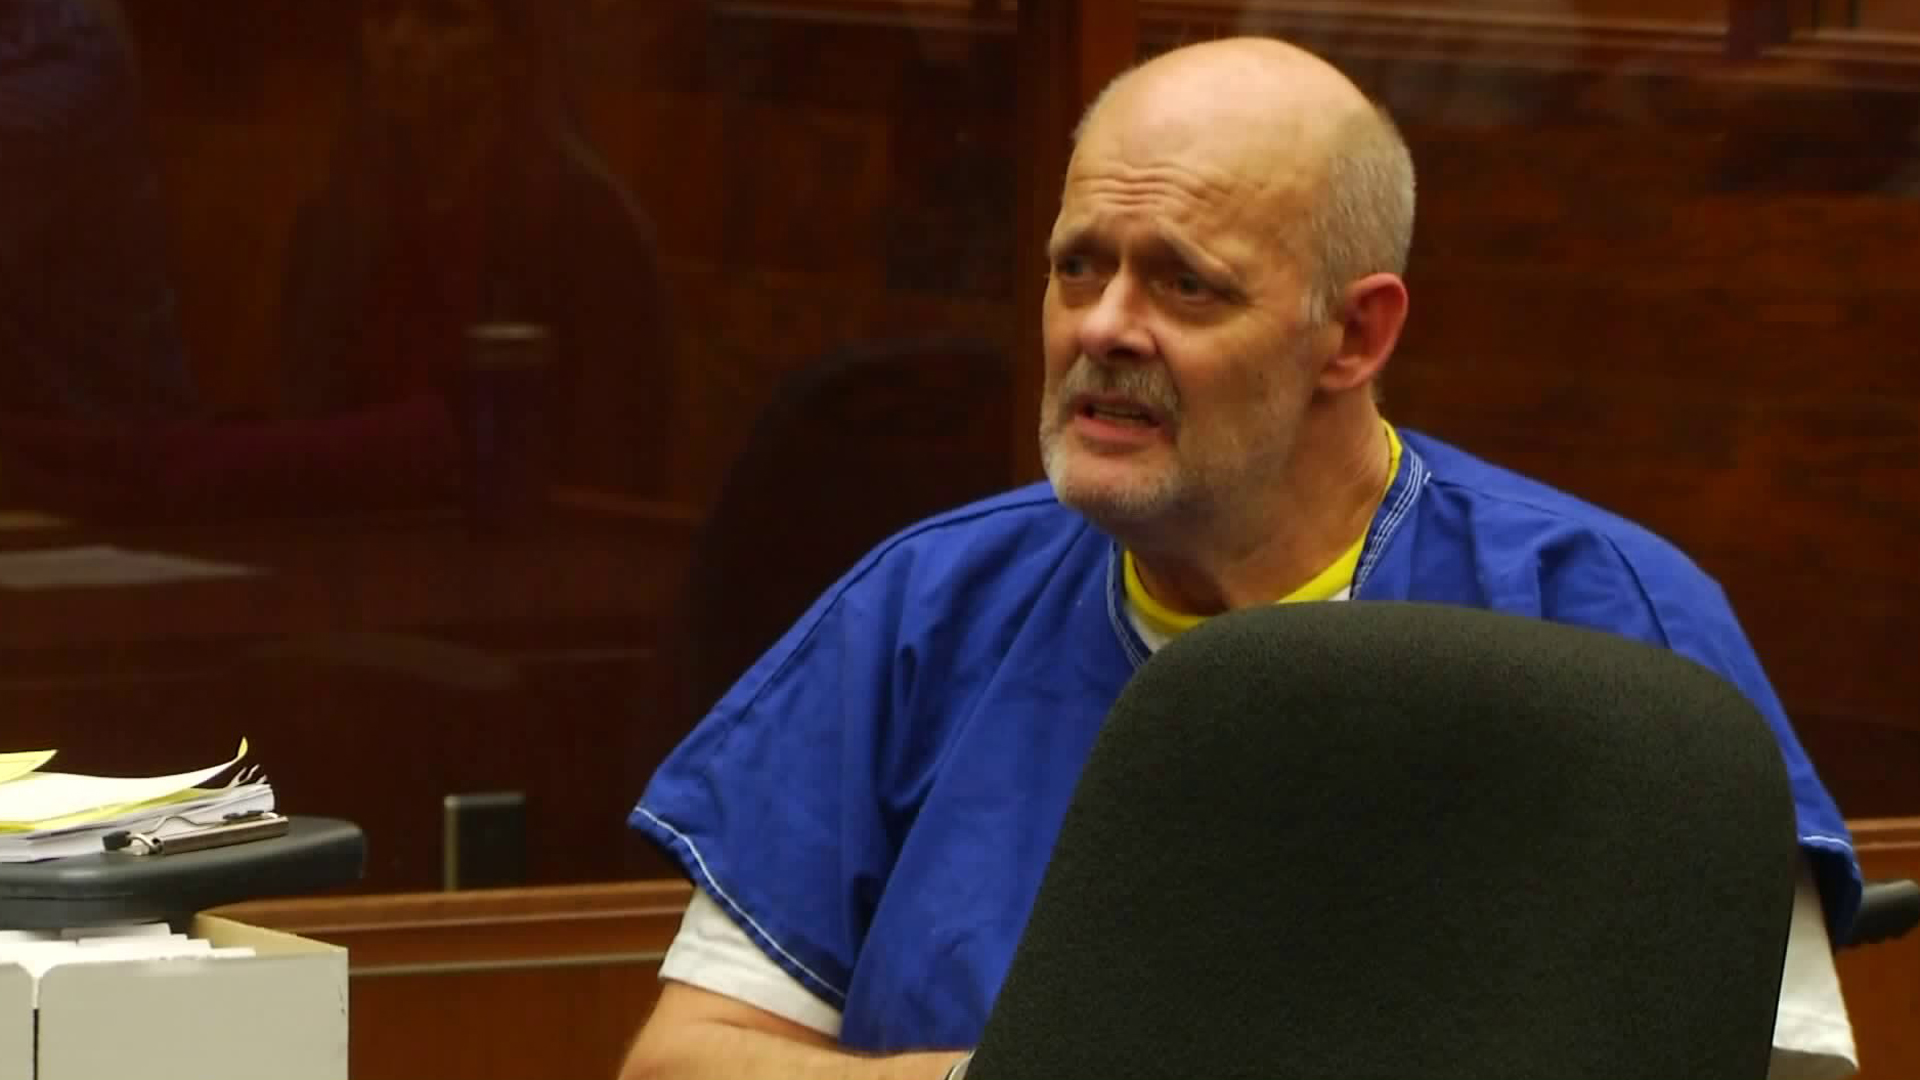 Bruce Paddock appears at his arraignment in downtown L.A. courtroom on Oct. 27, 2017. (Credit: KTLA)